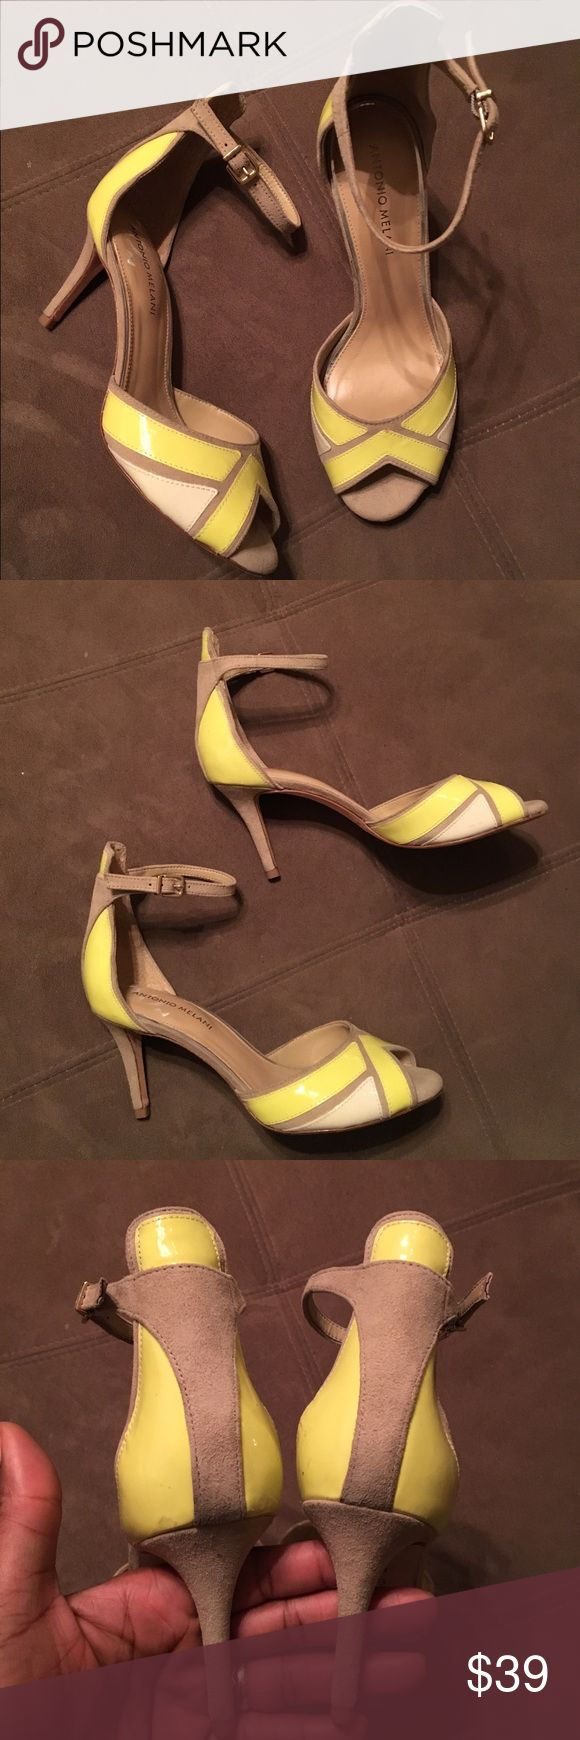 """Antonio Melani shoes Antonio Melani open toe shoes. Preloved, few scurfs from use. In good condition. Fabulous with a flattering girly dress 👗🍭🌺 3.5"""" high ANTONIO MELANI Shoes Heels"""